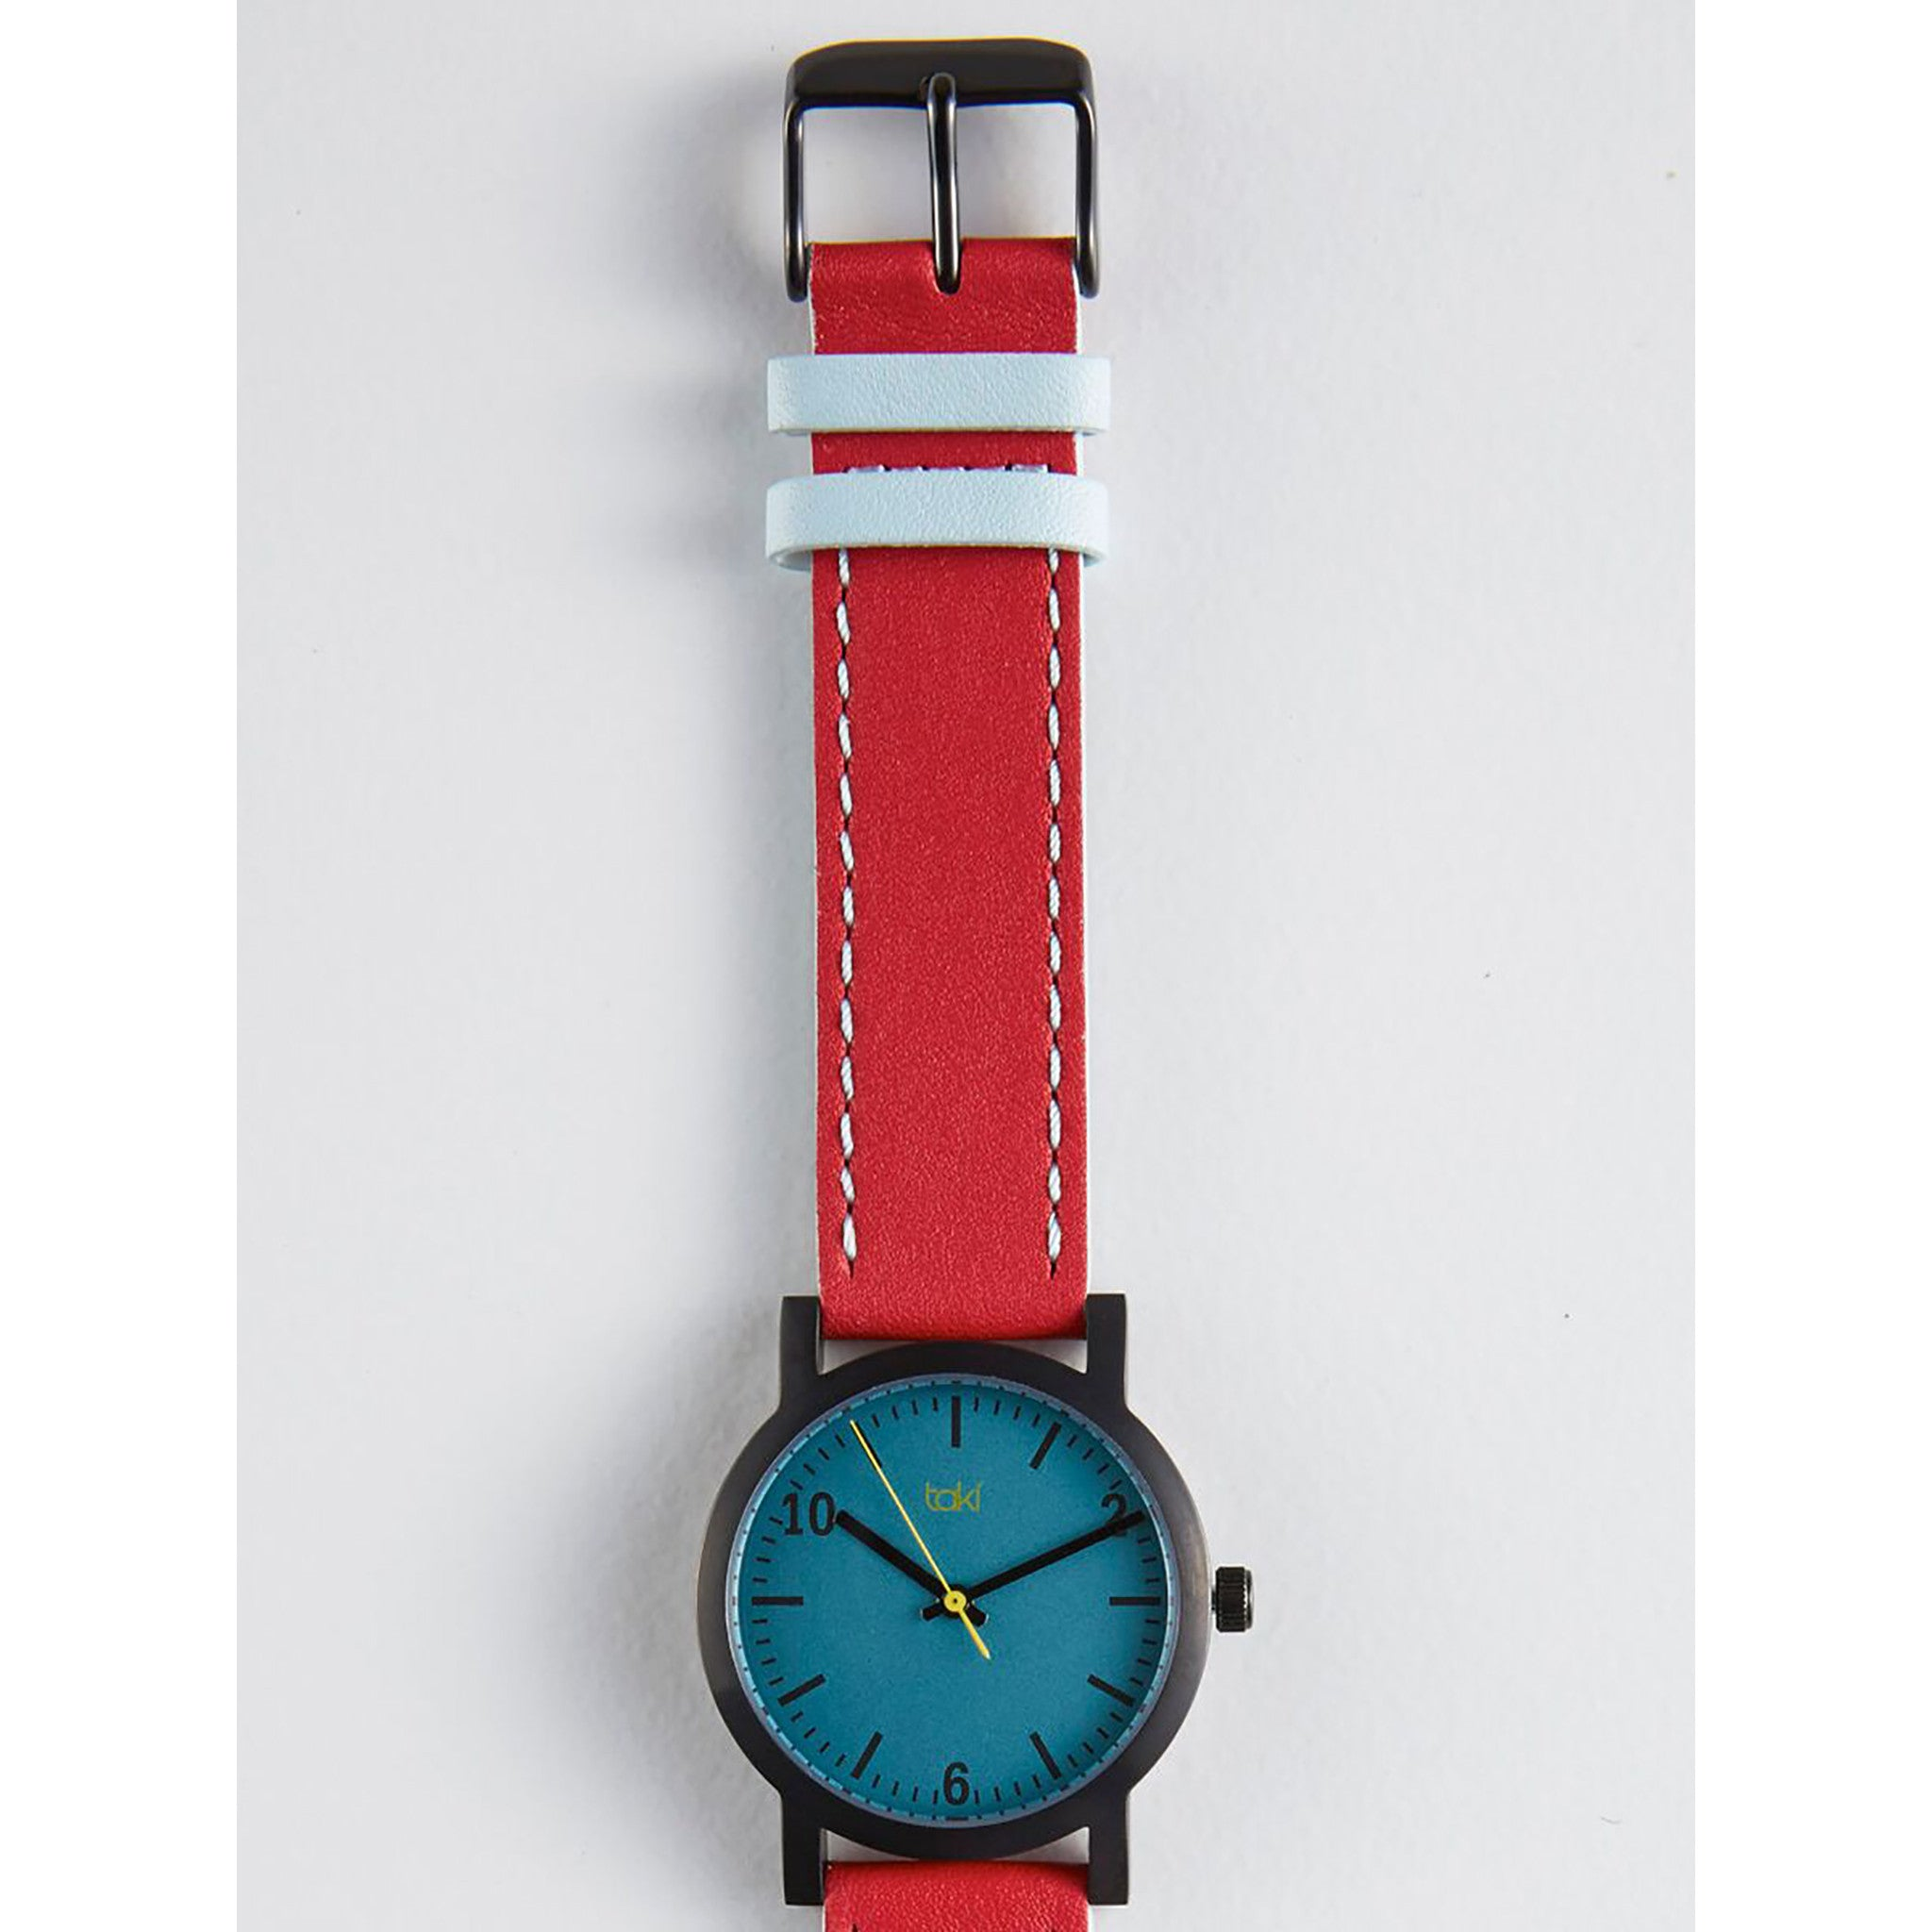 c from z apple r watches band online leather buy a red